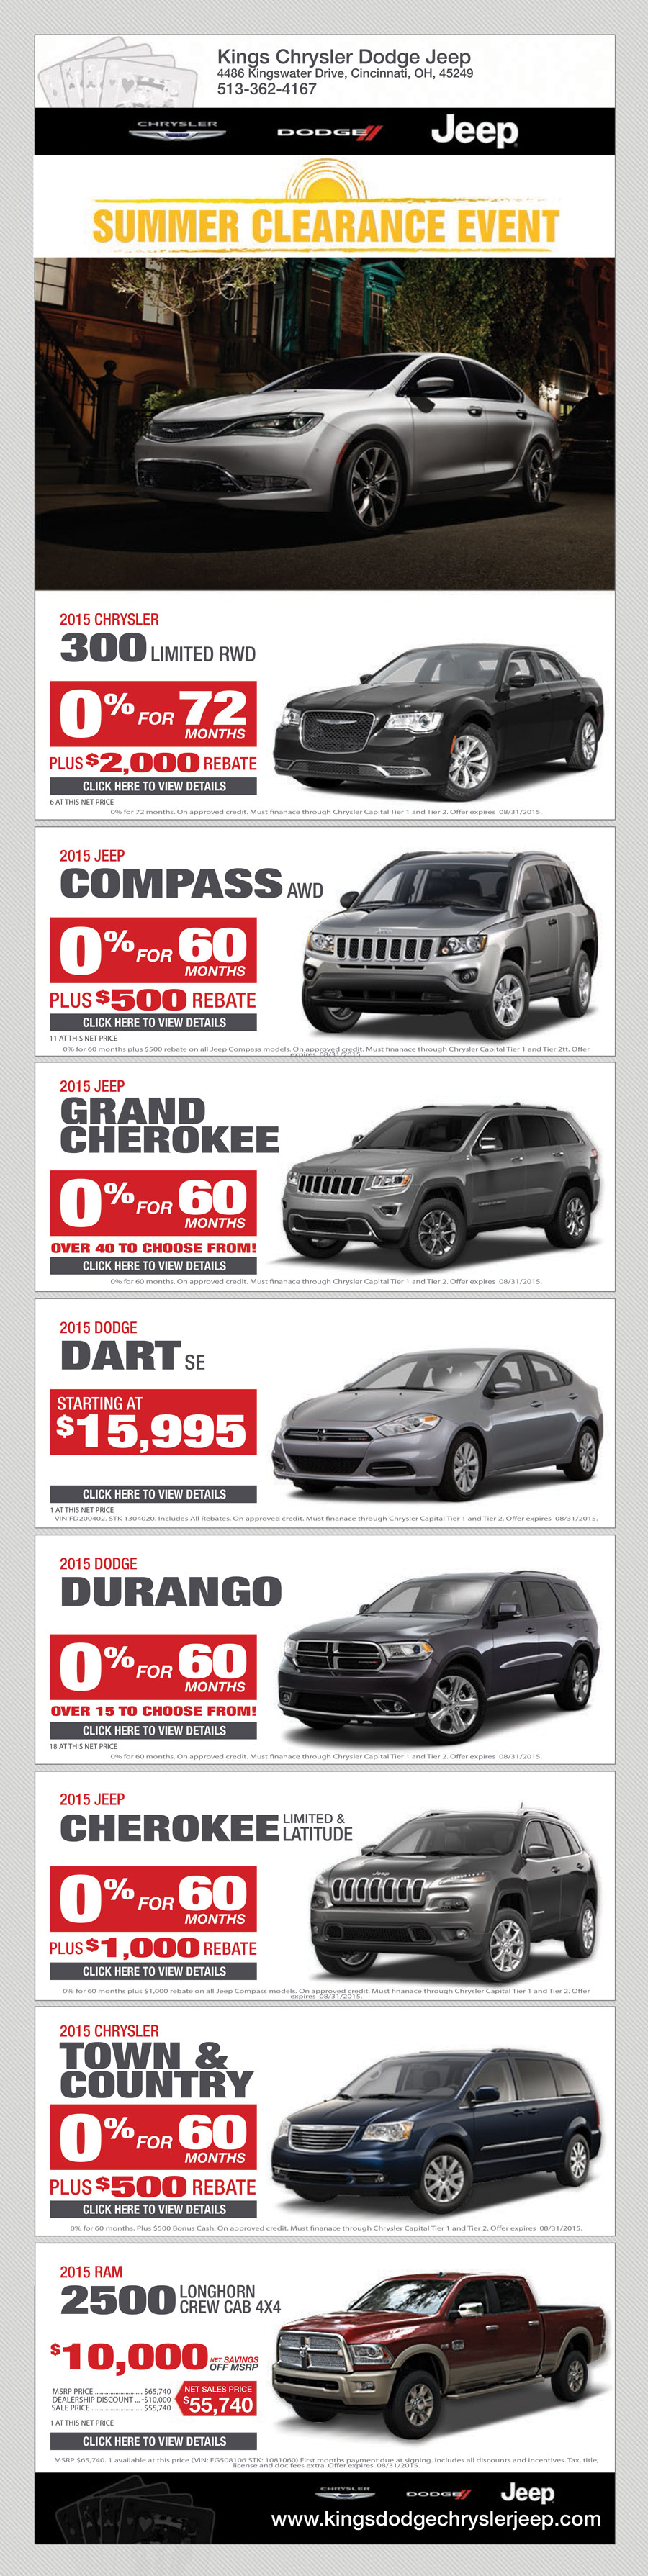 Awesome Kings Chrysler Jeep Dodge Ram Specials August 2015